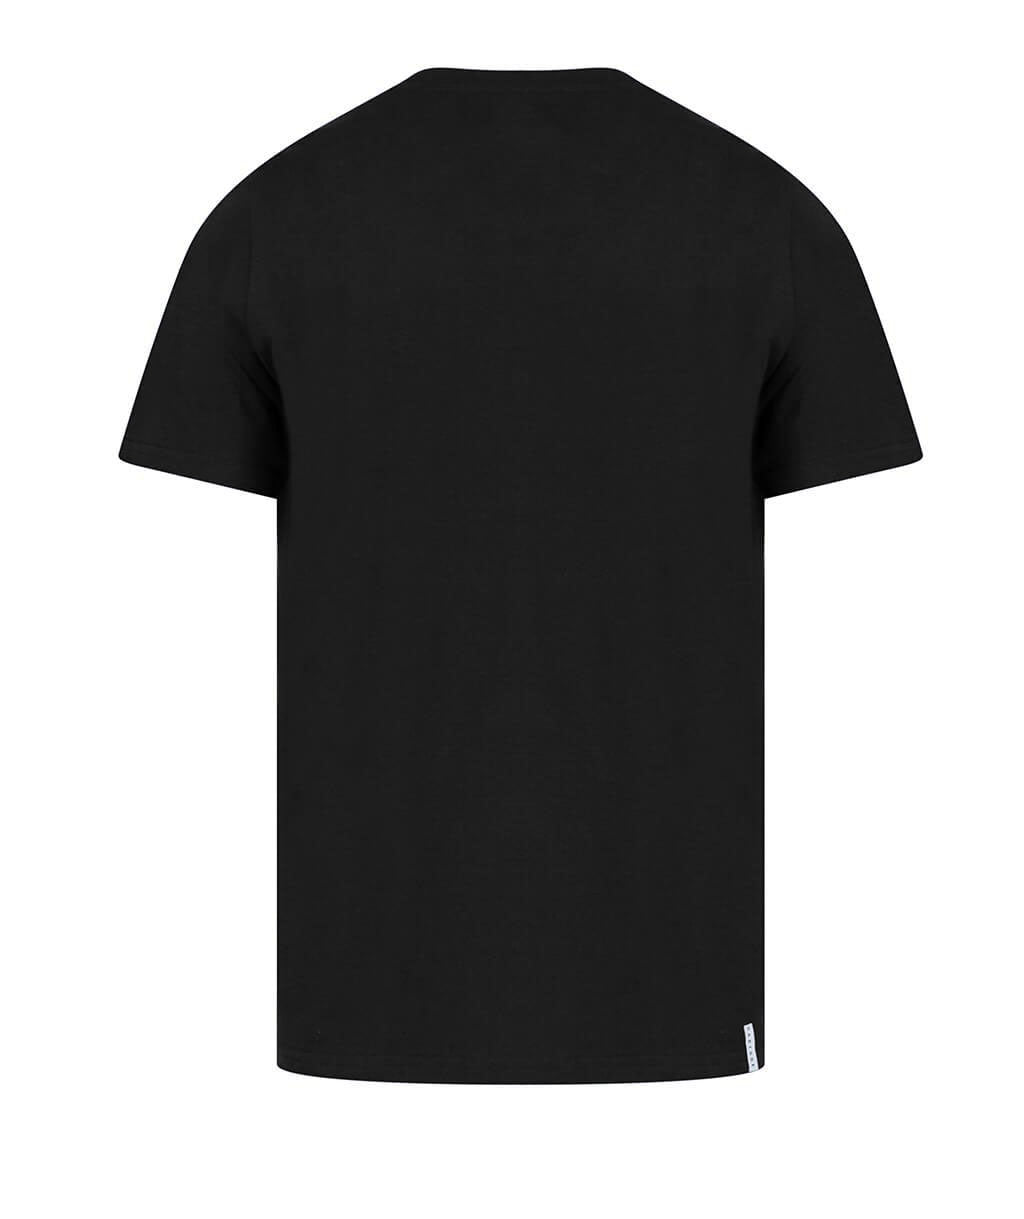 RFC Cotton SS Tee - Black/Orange